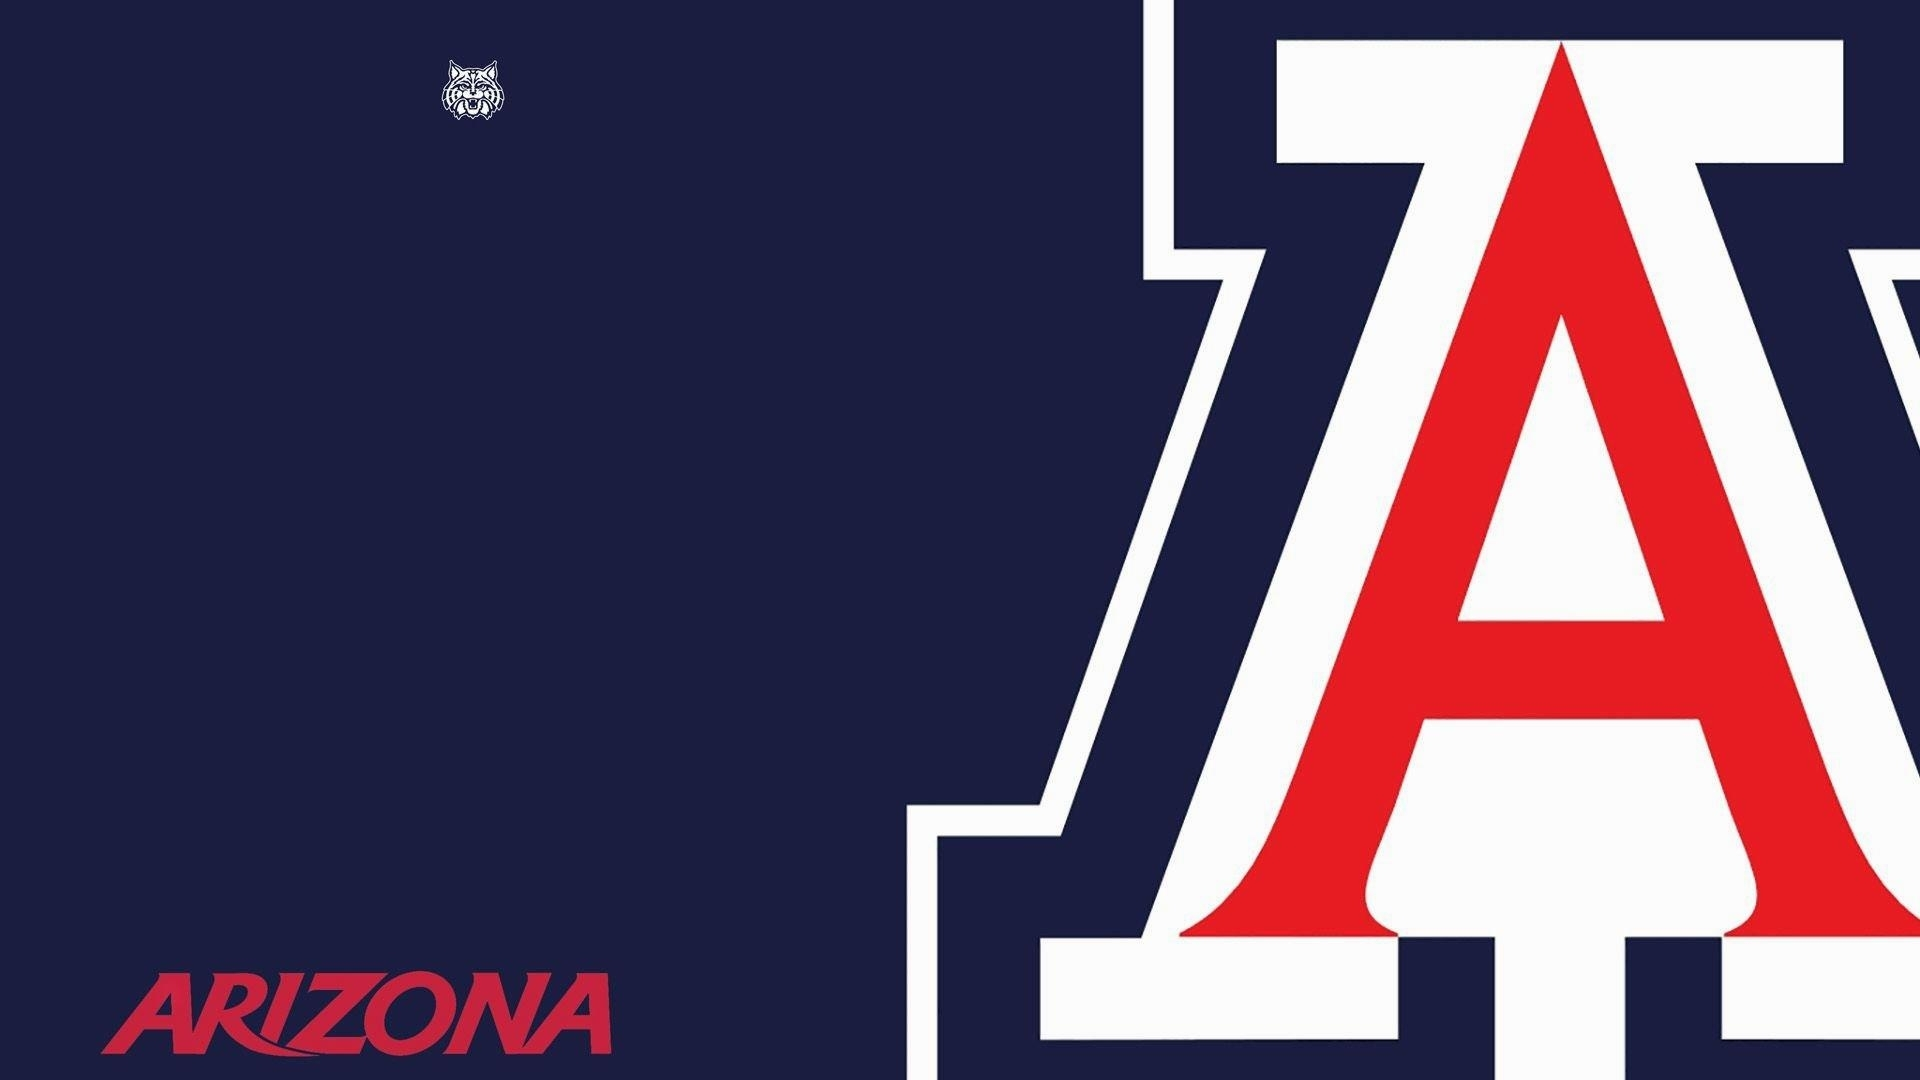 university of arizona logo desktop wallpaper 62473 1920x1080 px